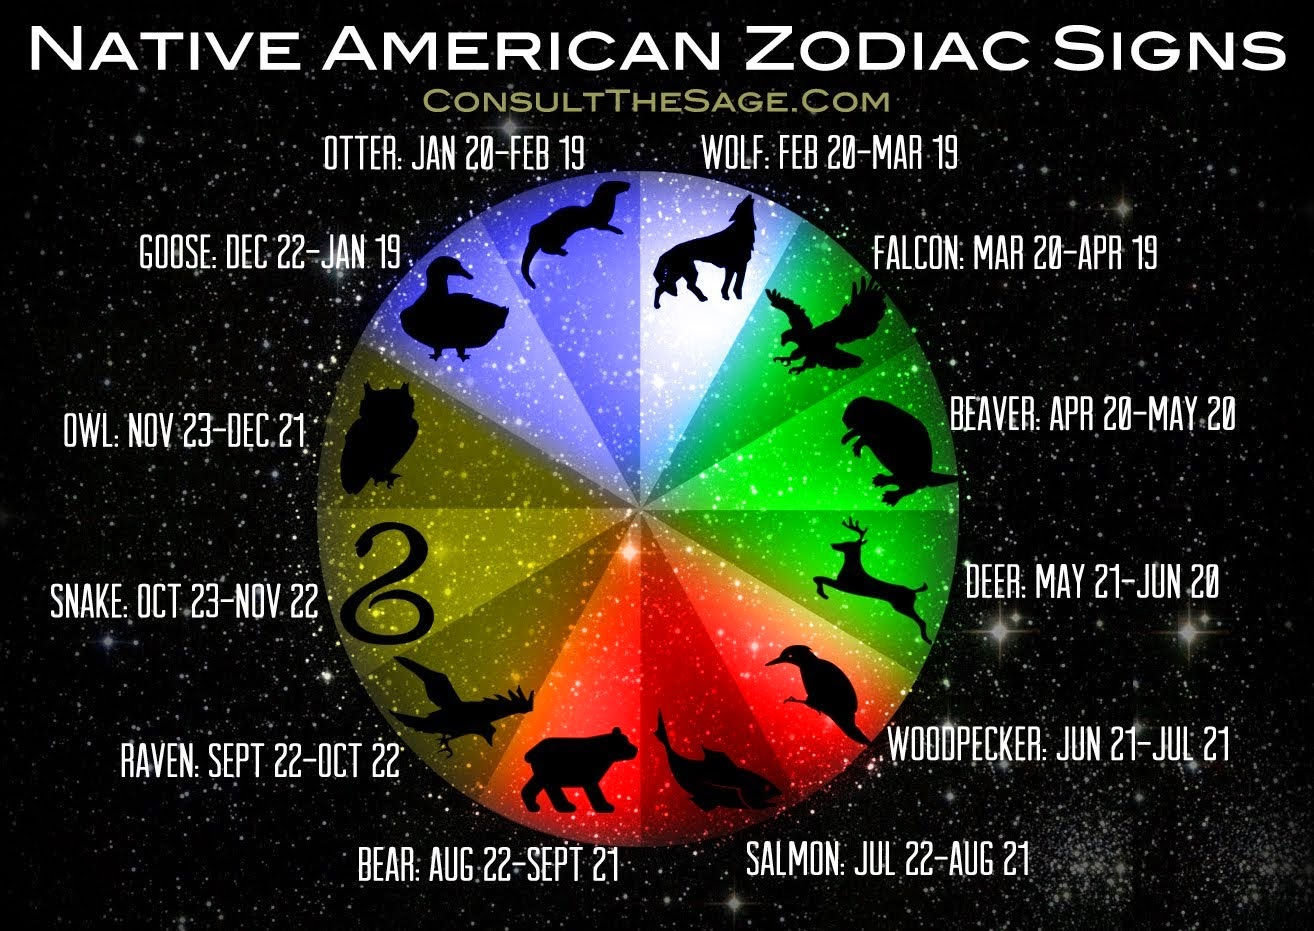 Zodiac signs: meanings, symbols and activities